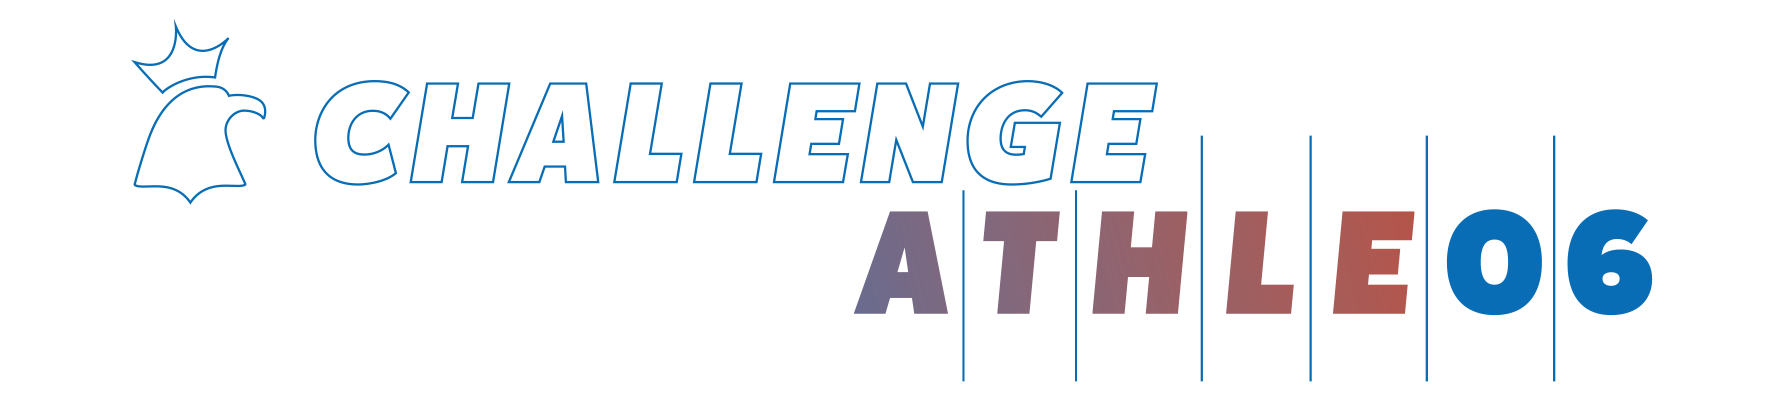 LOGO CHALLENGE ATHLE06 PNG